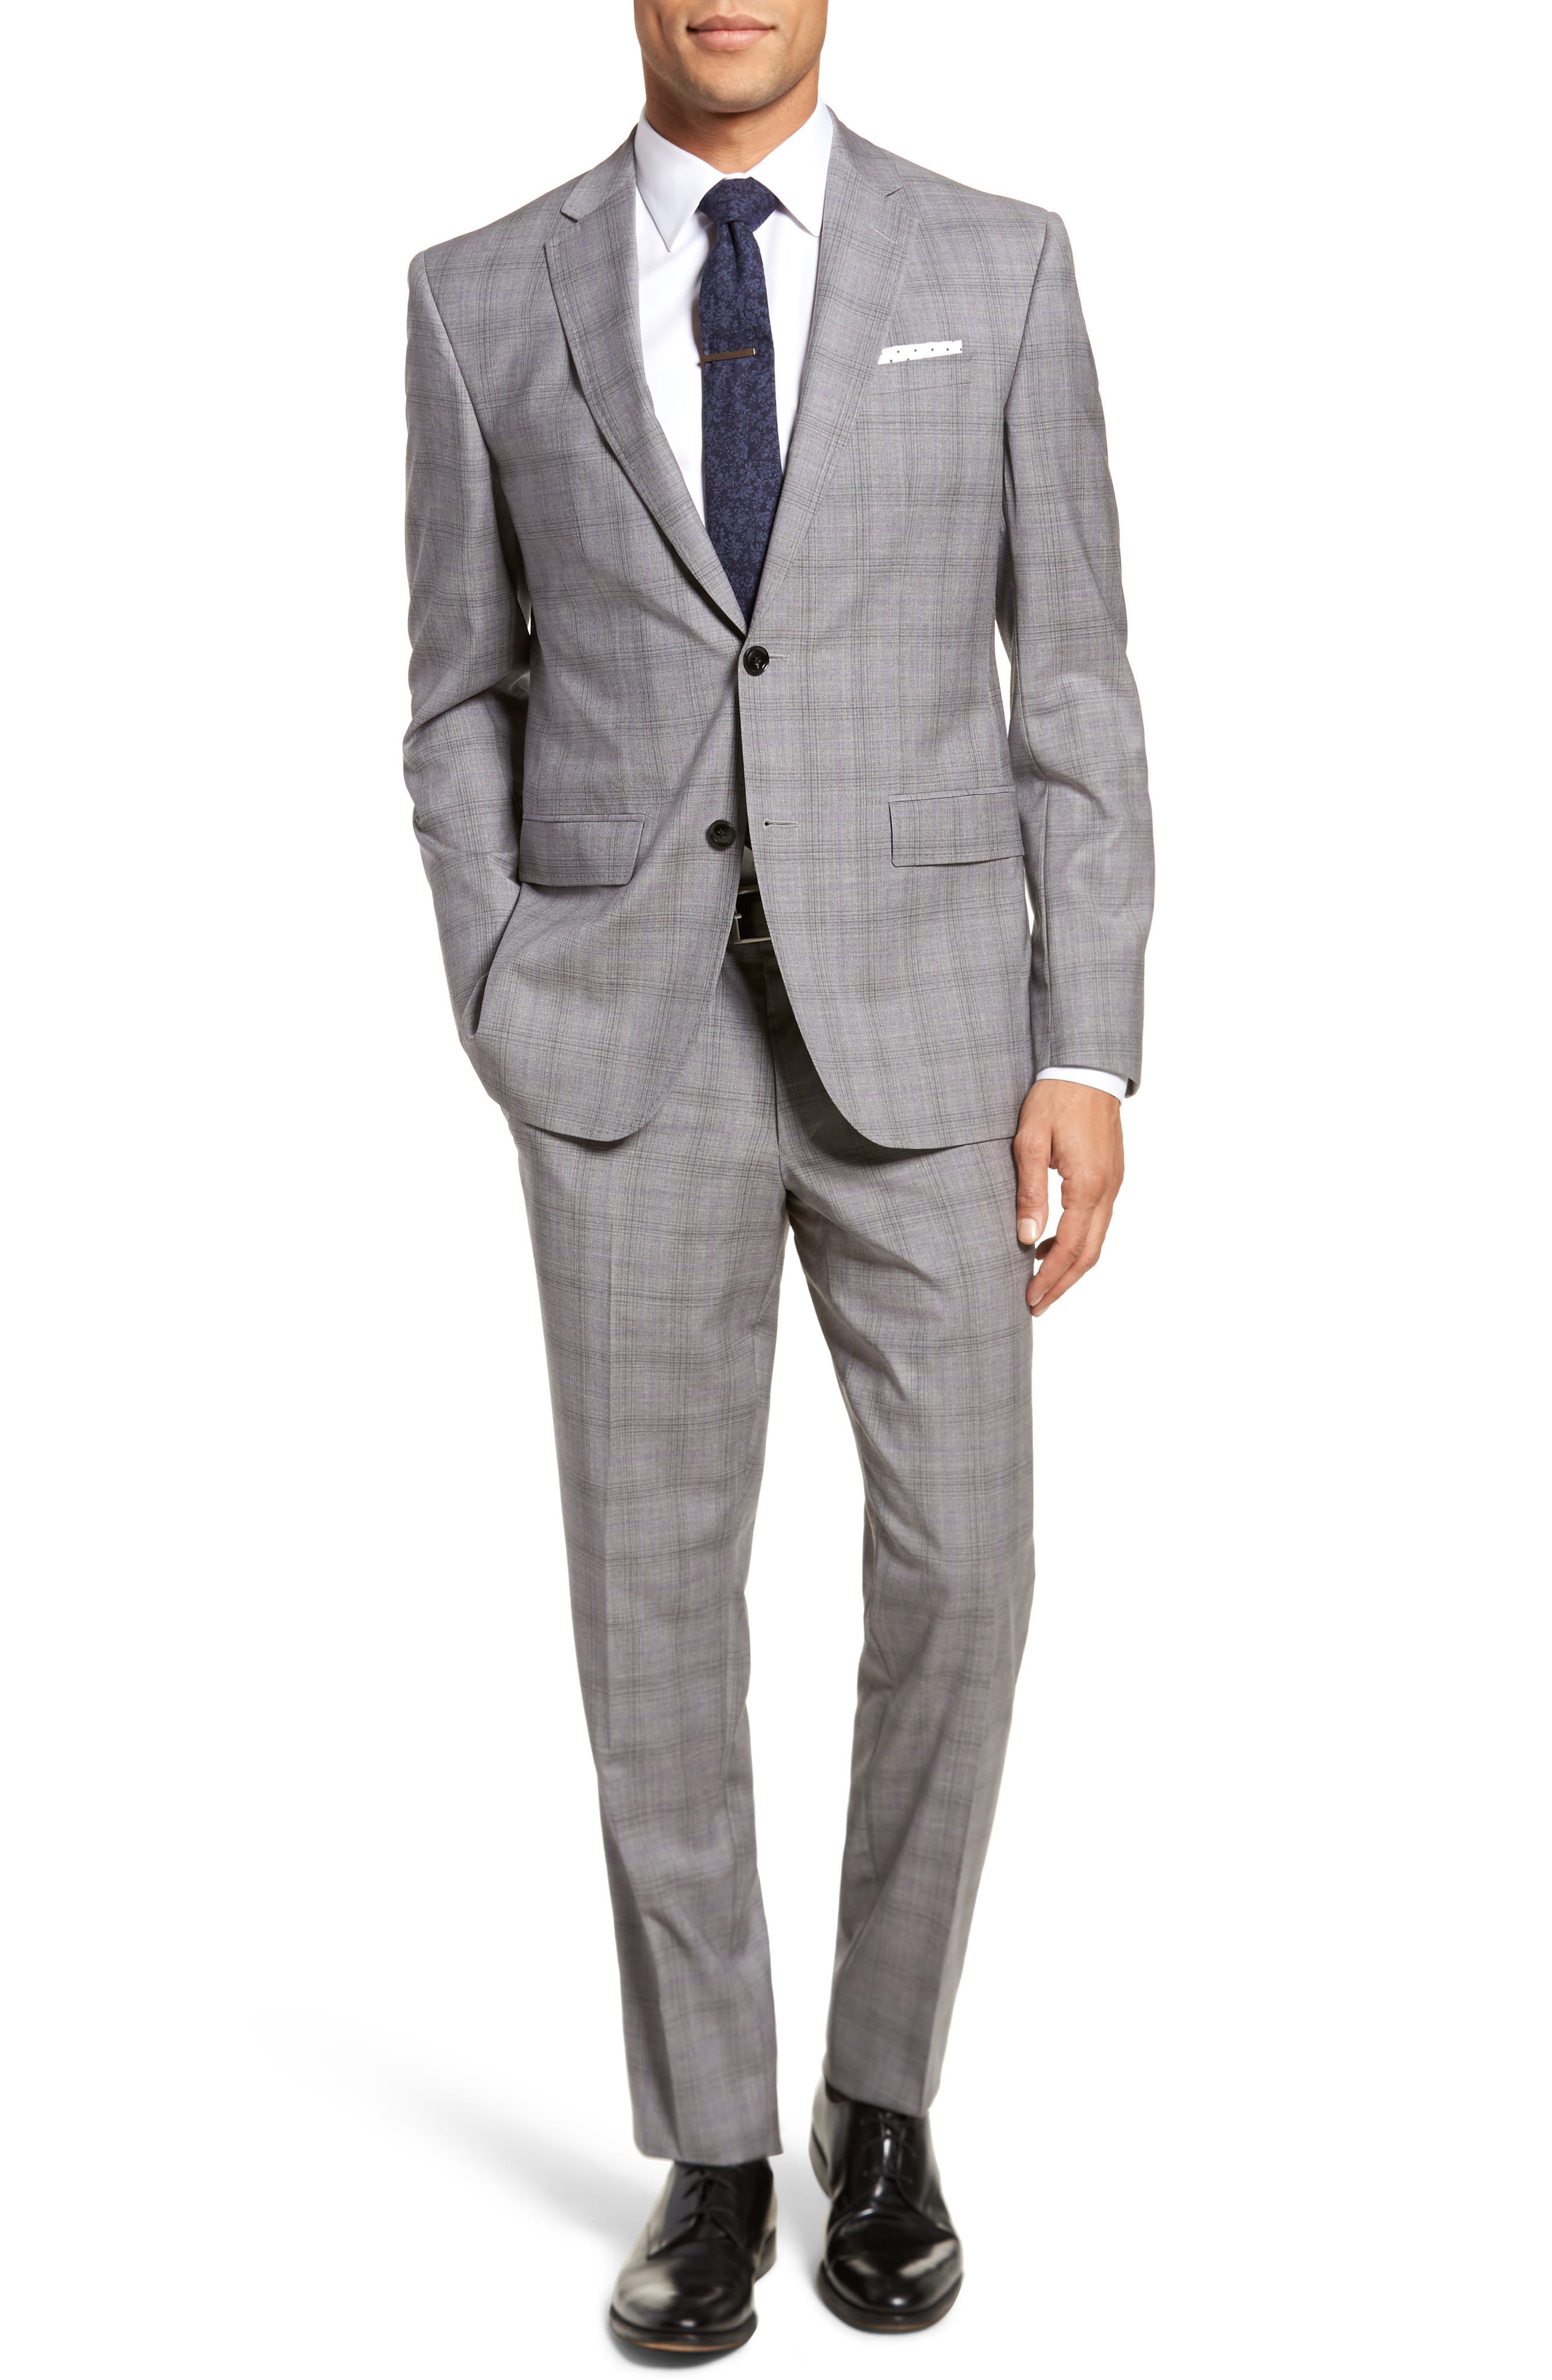 Jay Trim Fit Plaid Wool Suit,                         Main,                         color, Light Grey